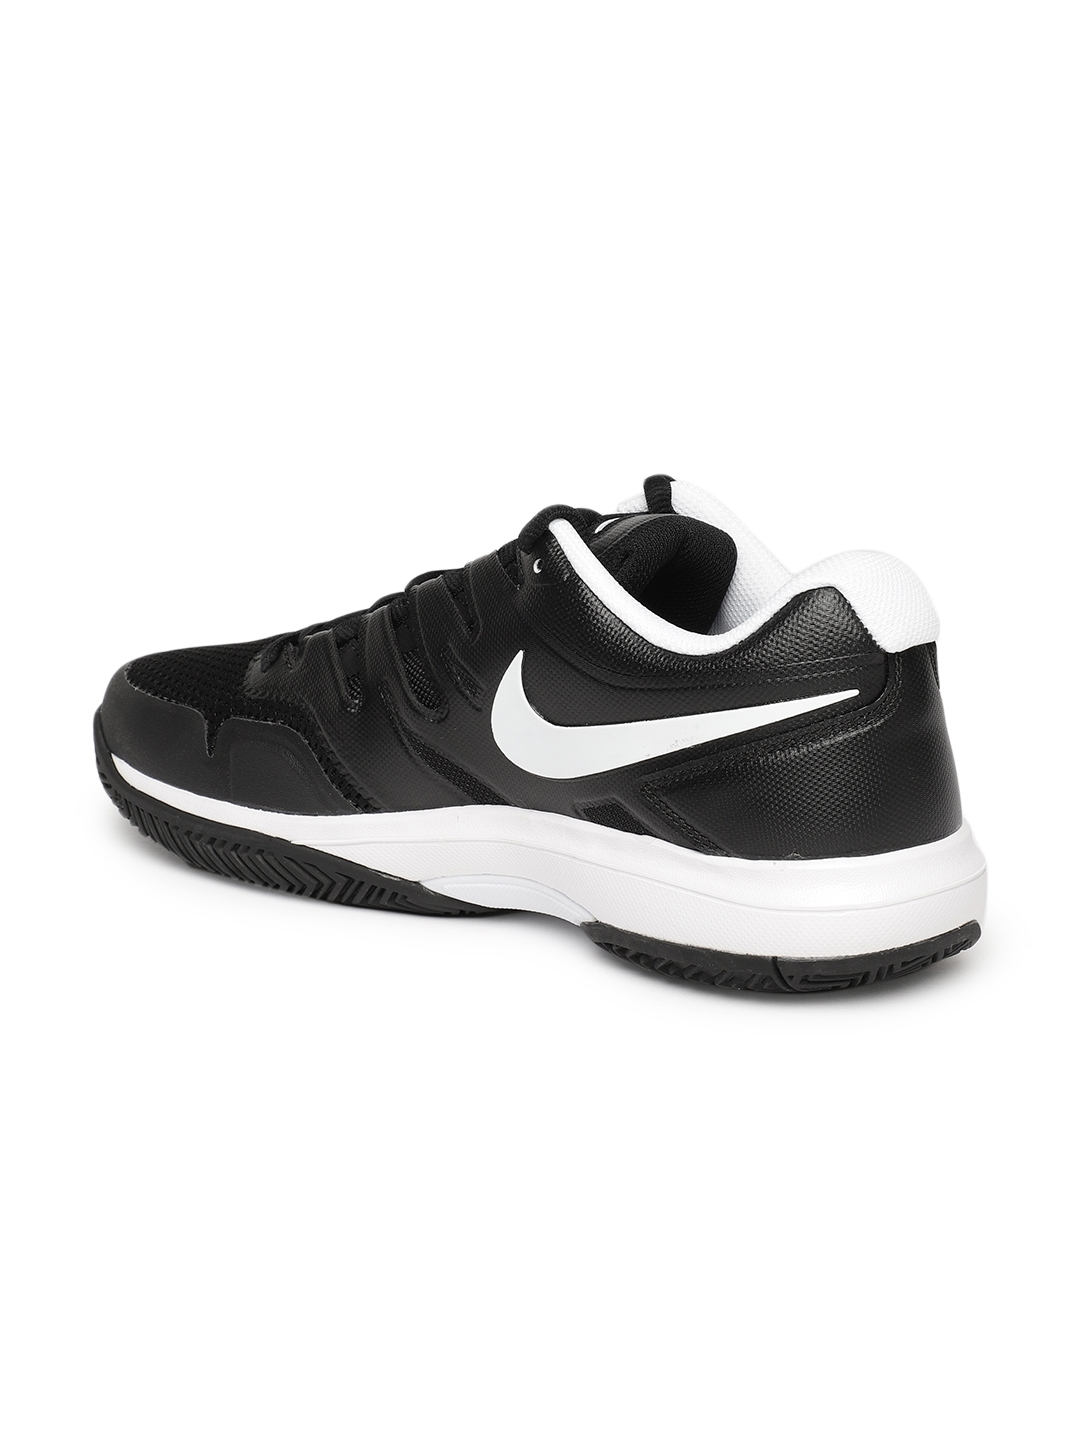 e5035be703f20 Buy Nike Men Black Solid AIR ZOOM PRESTIGE HC Tennis Shoes - Sports ...